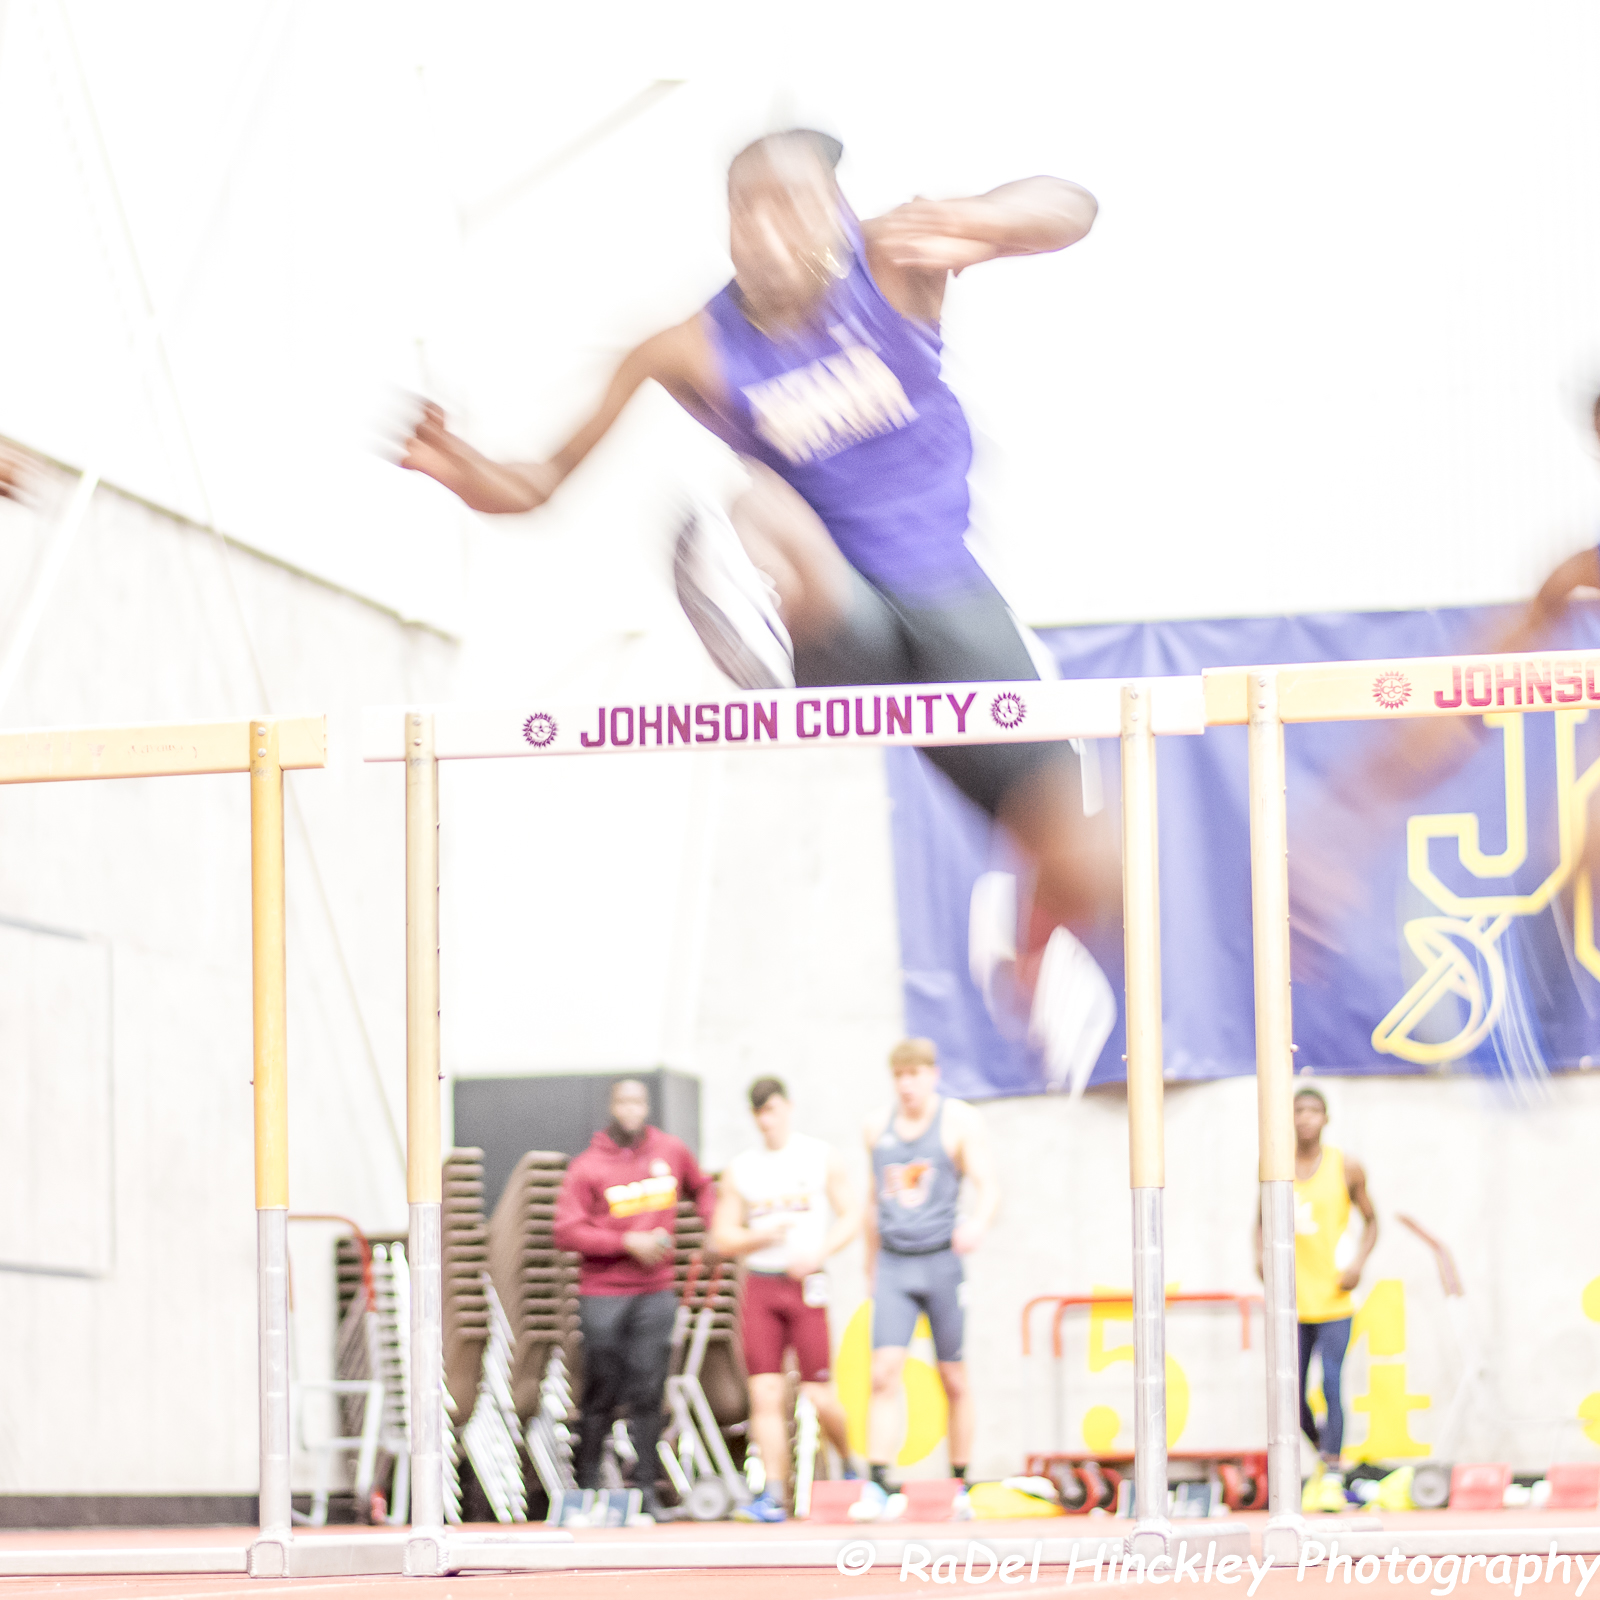 One my first tries at indoor track photography.  I need to make sure my shutter is fast enough so the athlete isn't just a blur…